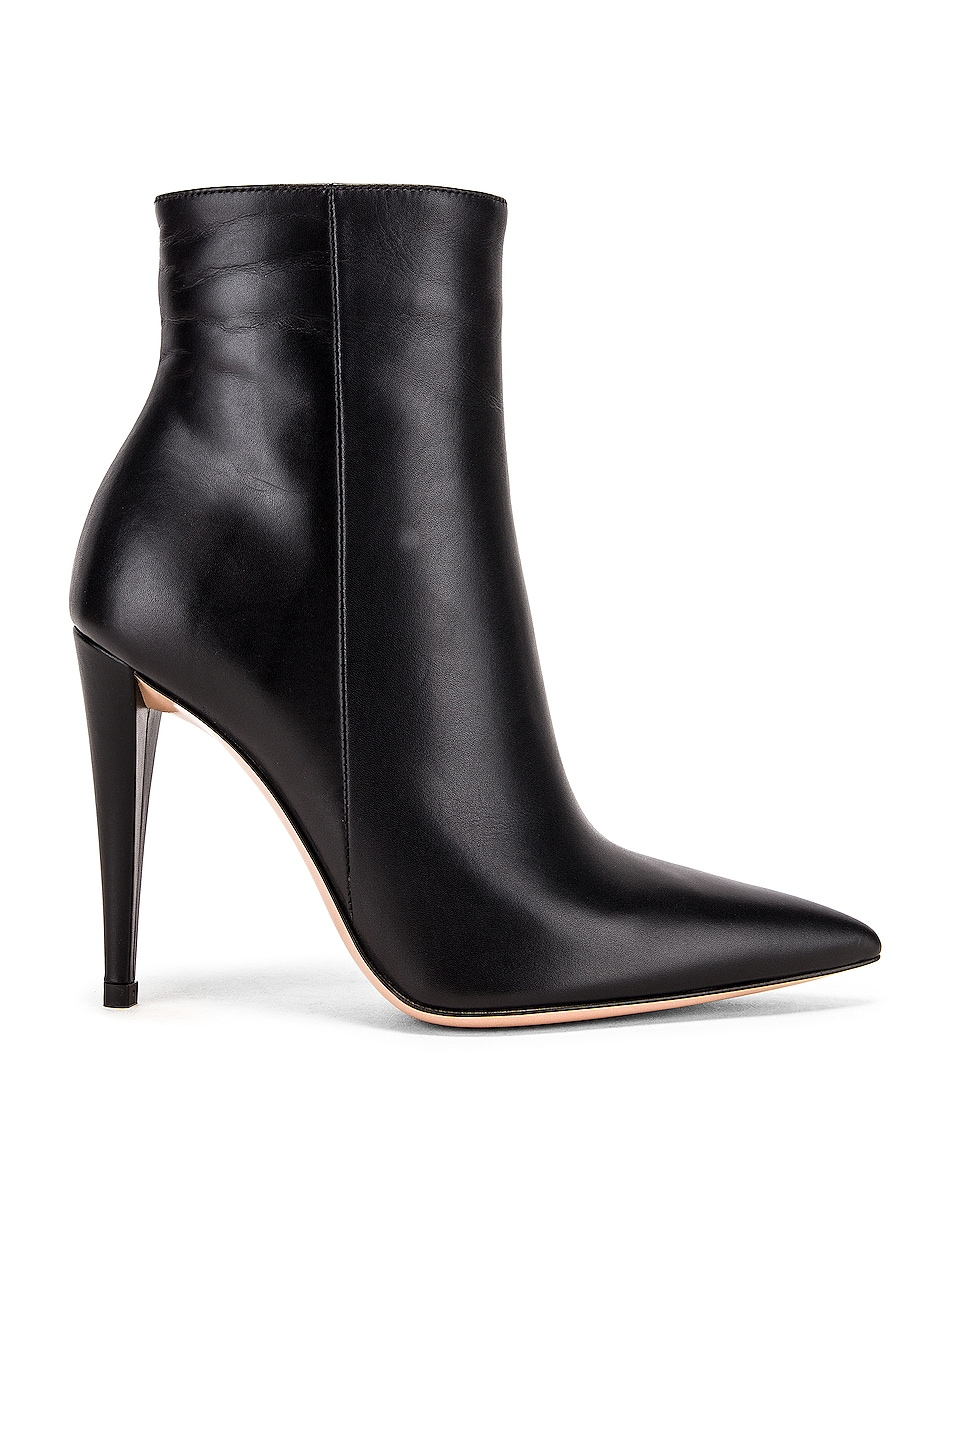 Image 1 of Gianvito Rossi Scarlet Ankle Heel Booties in Black